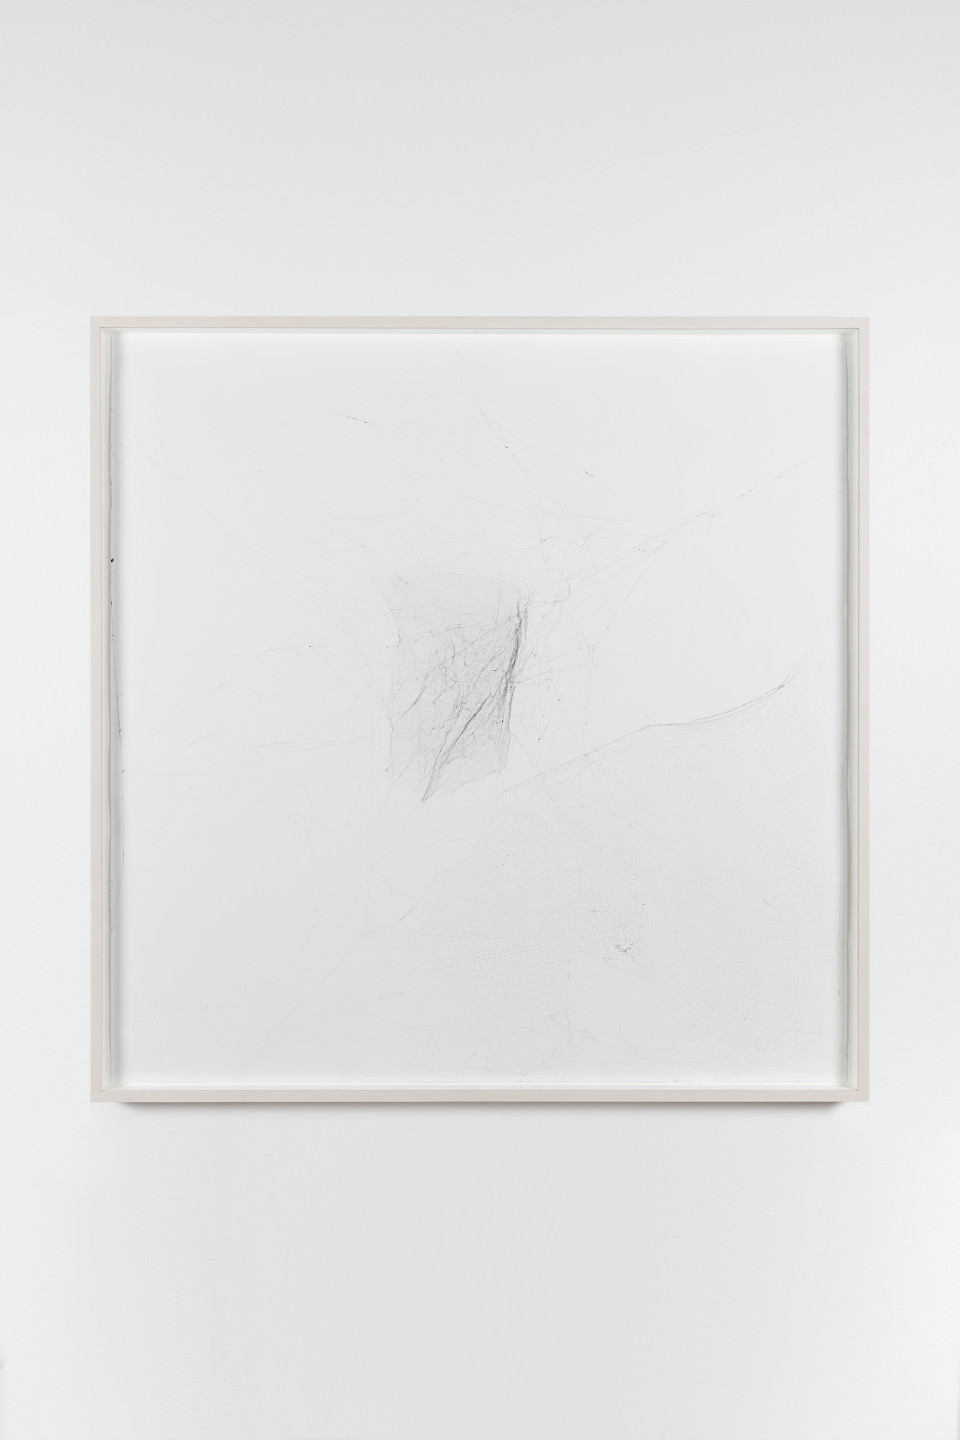 Tomás Saraceno Solitary, Semi-Social Mapping Of NGC 5128 And PKS 1322-427 By One Nephila Clavipes- One Week, Three Cryptophora Citricola- Two Weeks, 2015 Spider silk, ink, glue, paper (TS 187) 93 x 39 cm (framed) 36 5/8 x 15 3/8 in